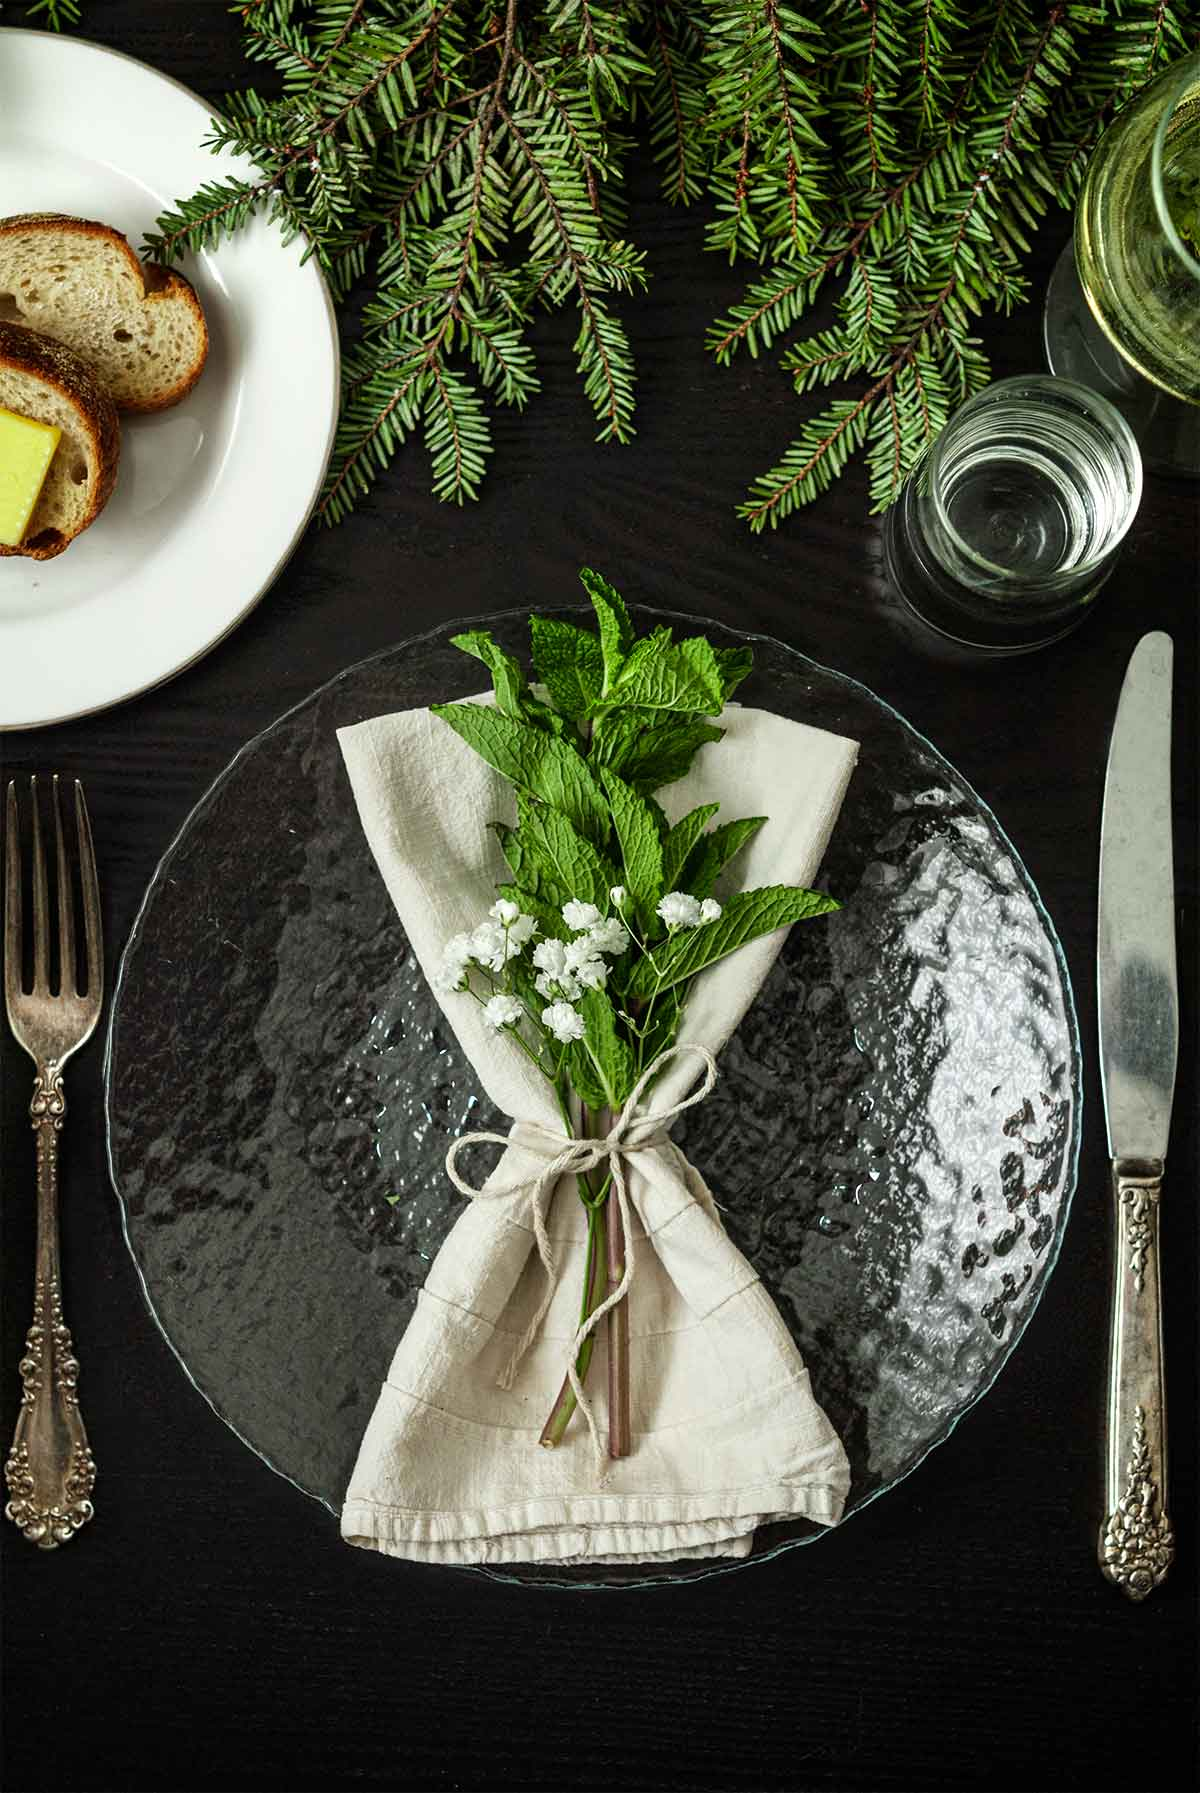 Mint and Baby's Breath in a napkin on a plate on a table with holiday greenery, a plate of bread, silverware and glassware.